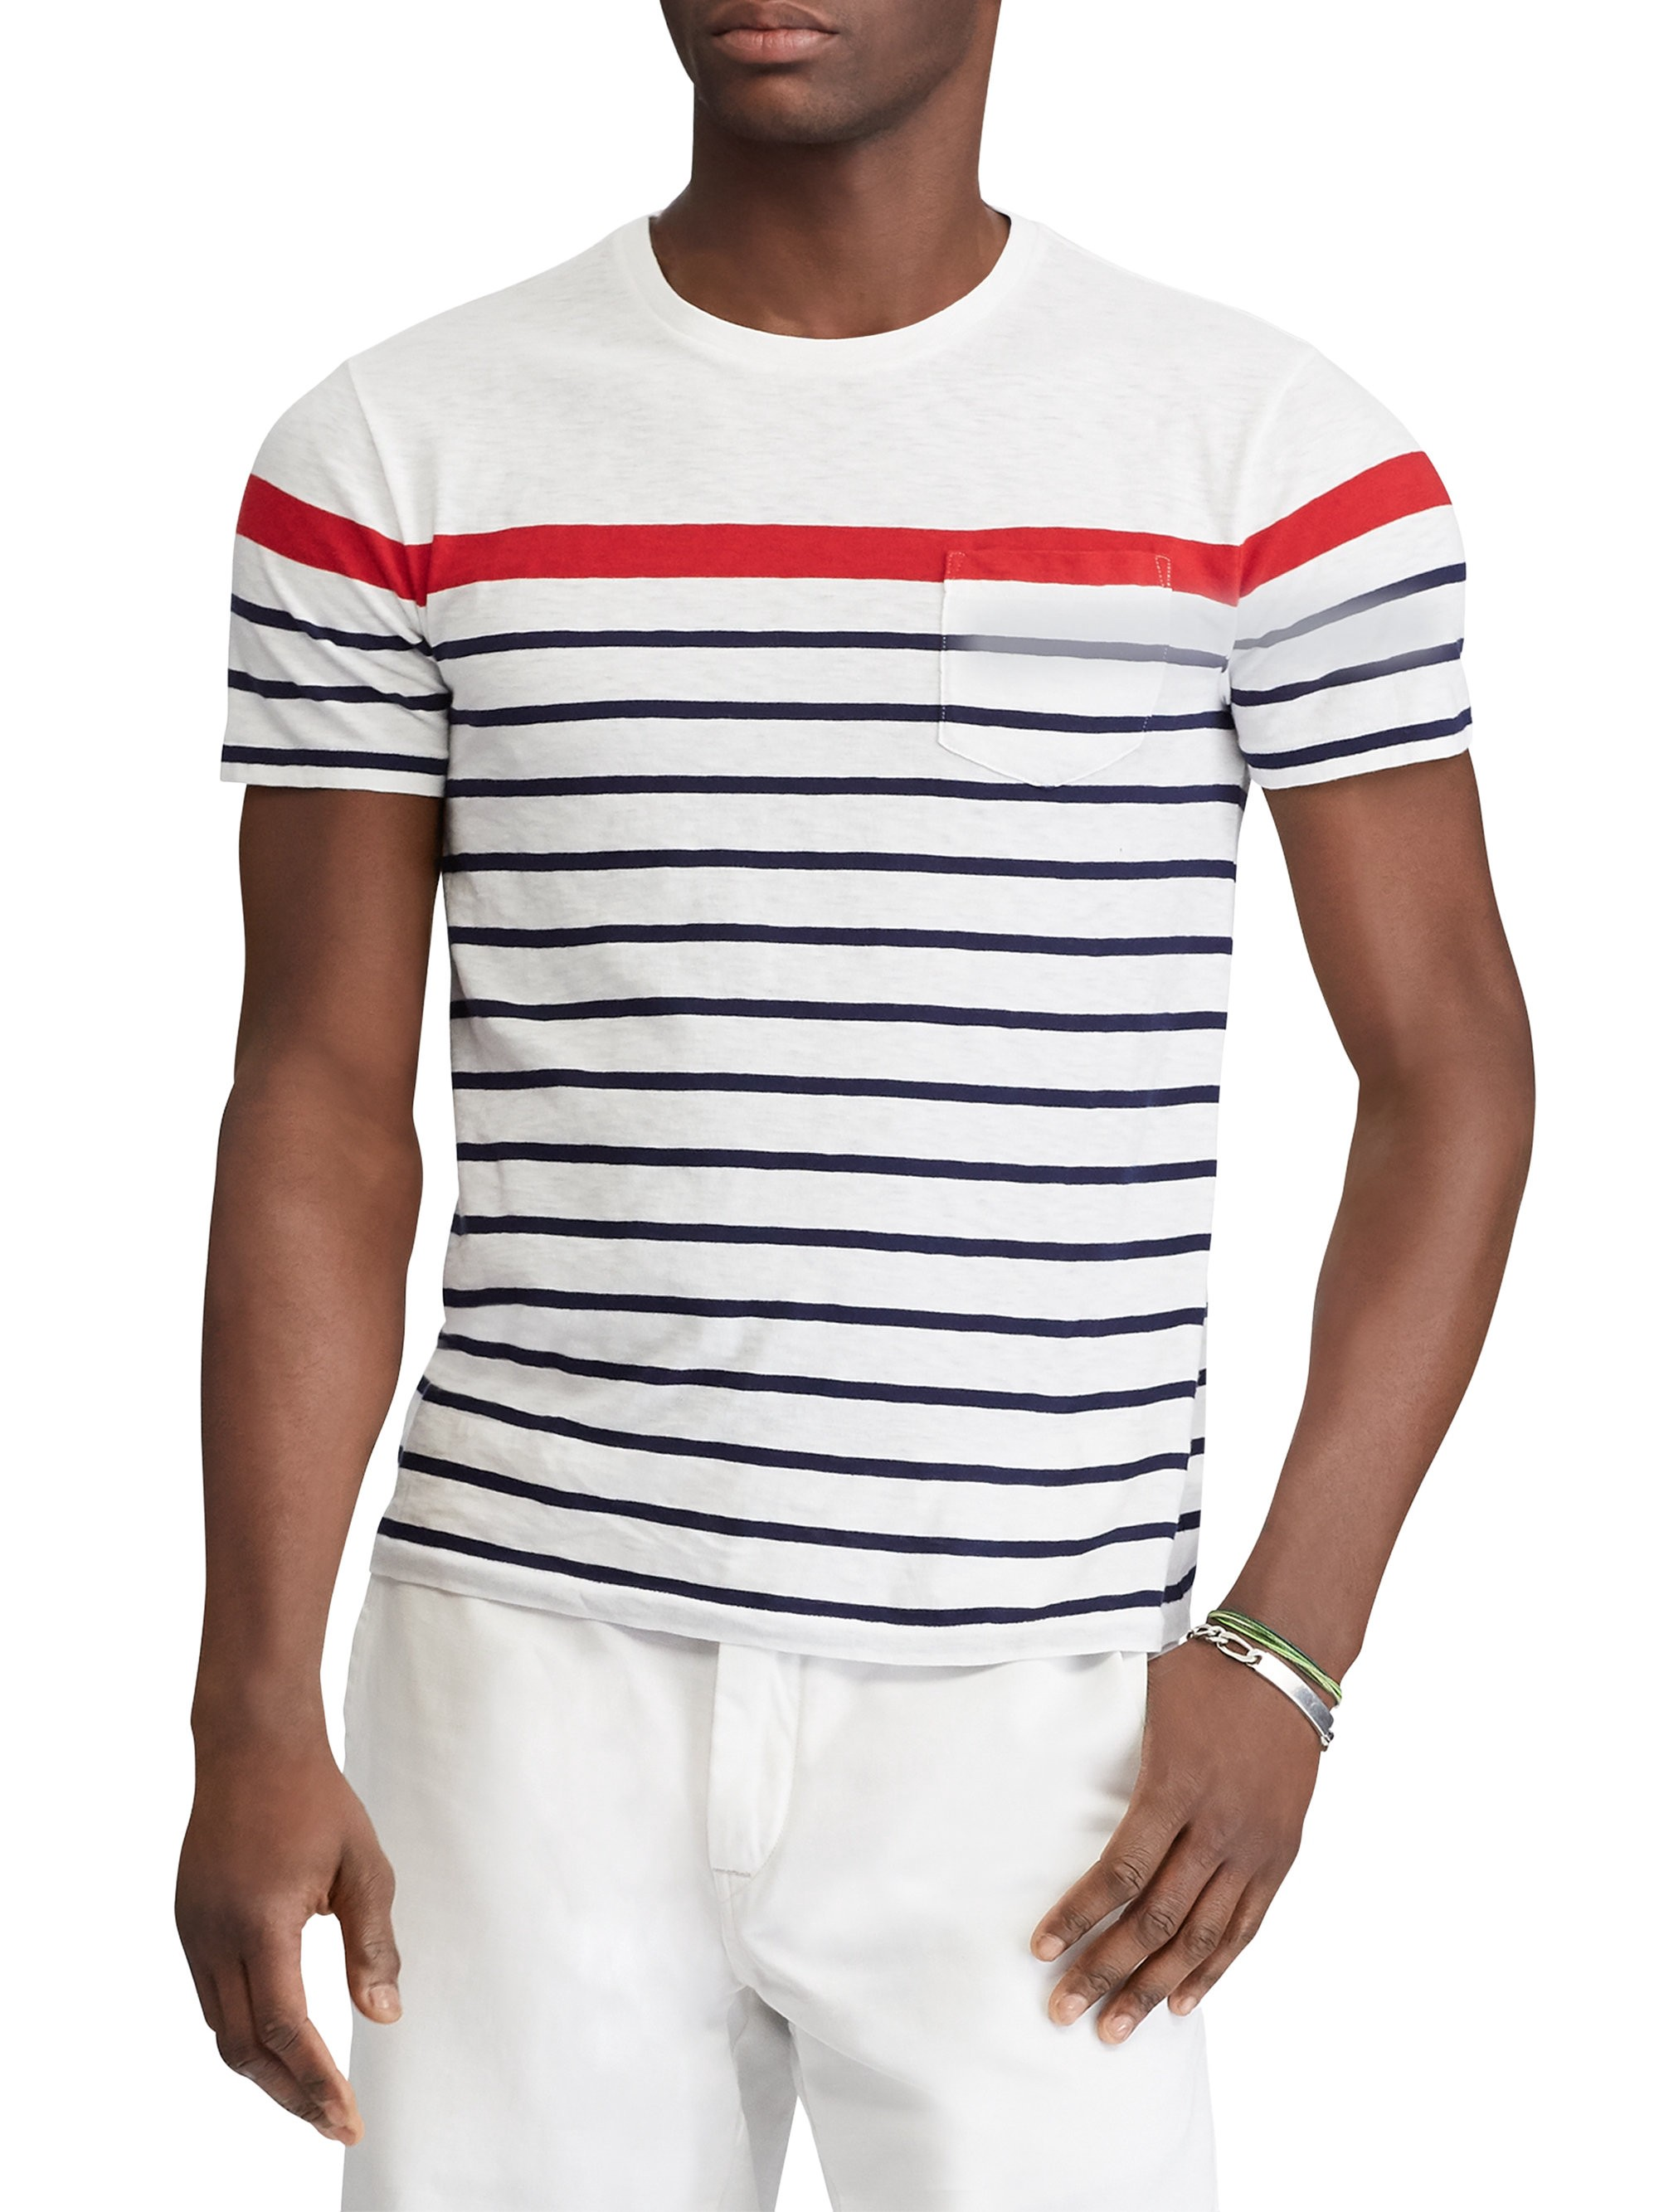 06e63f6d5785 White Striped Slub Jersey Tee by Ralph Lauren in 2019